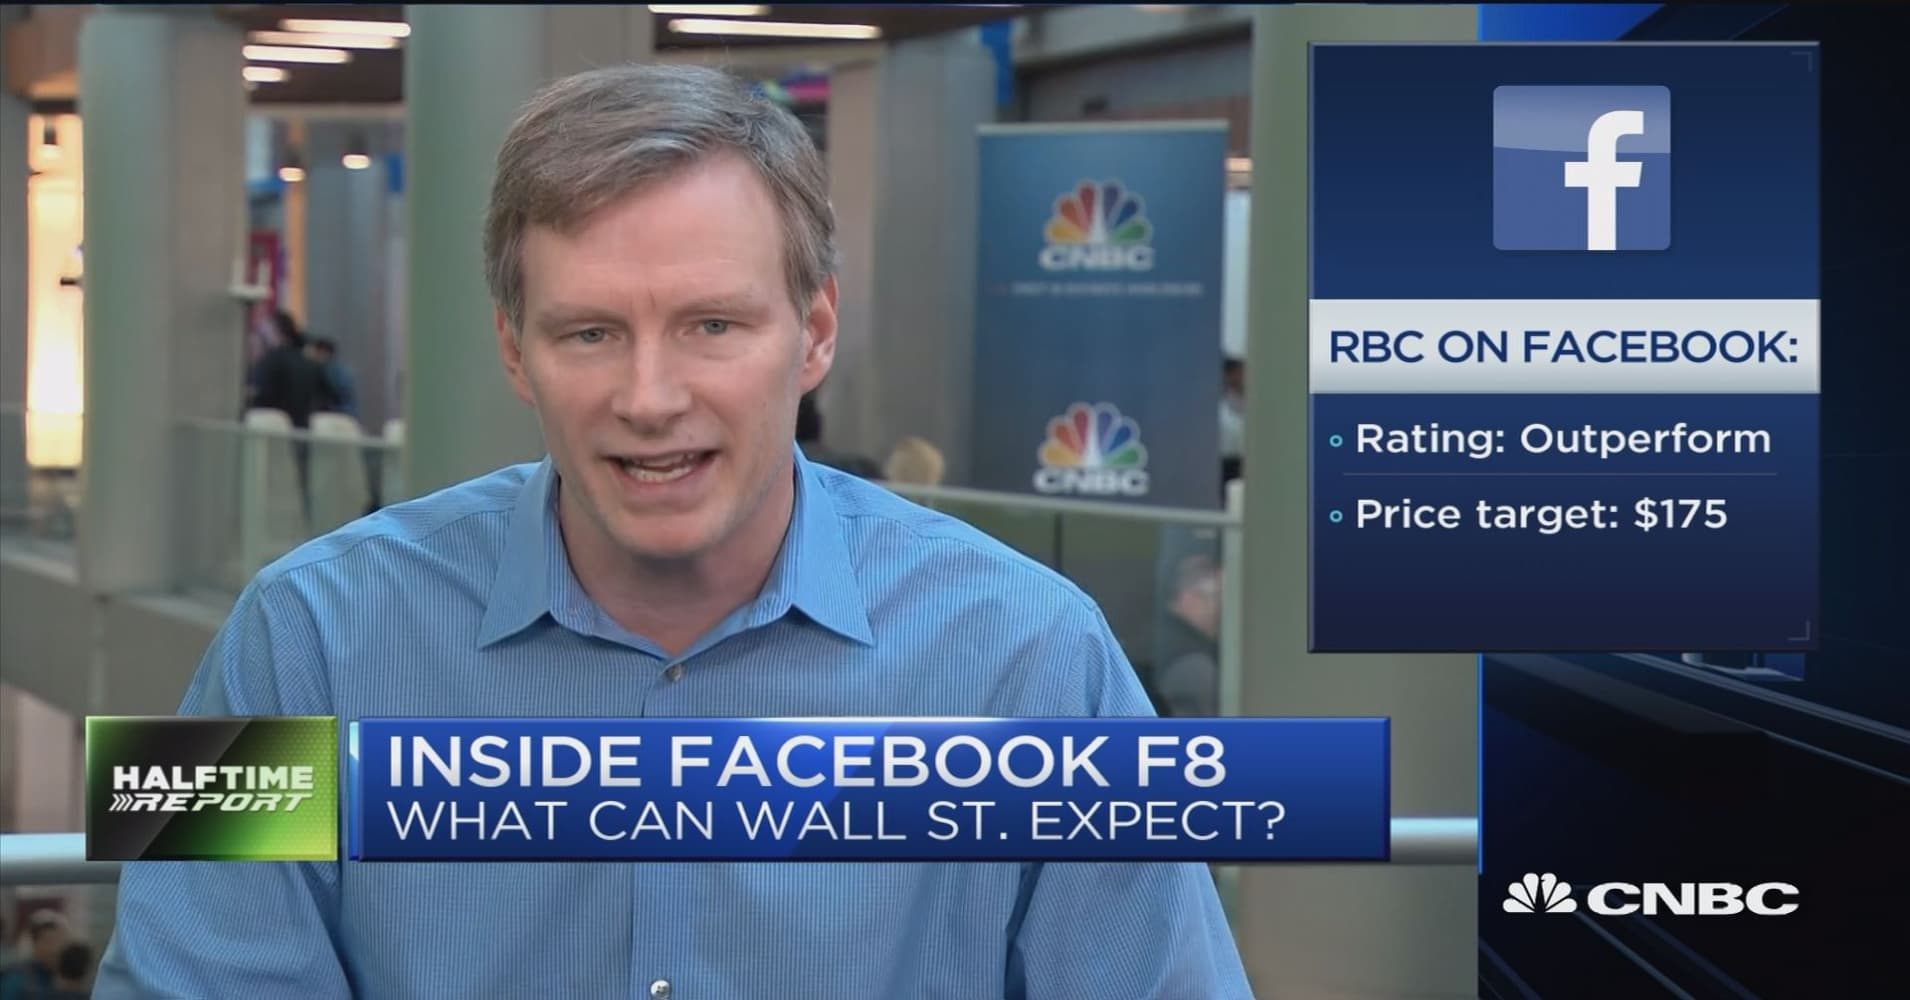 RBC analyst: Netflix becoming global media company, success is proving out